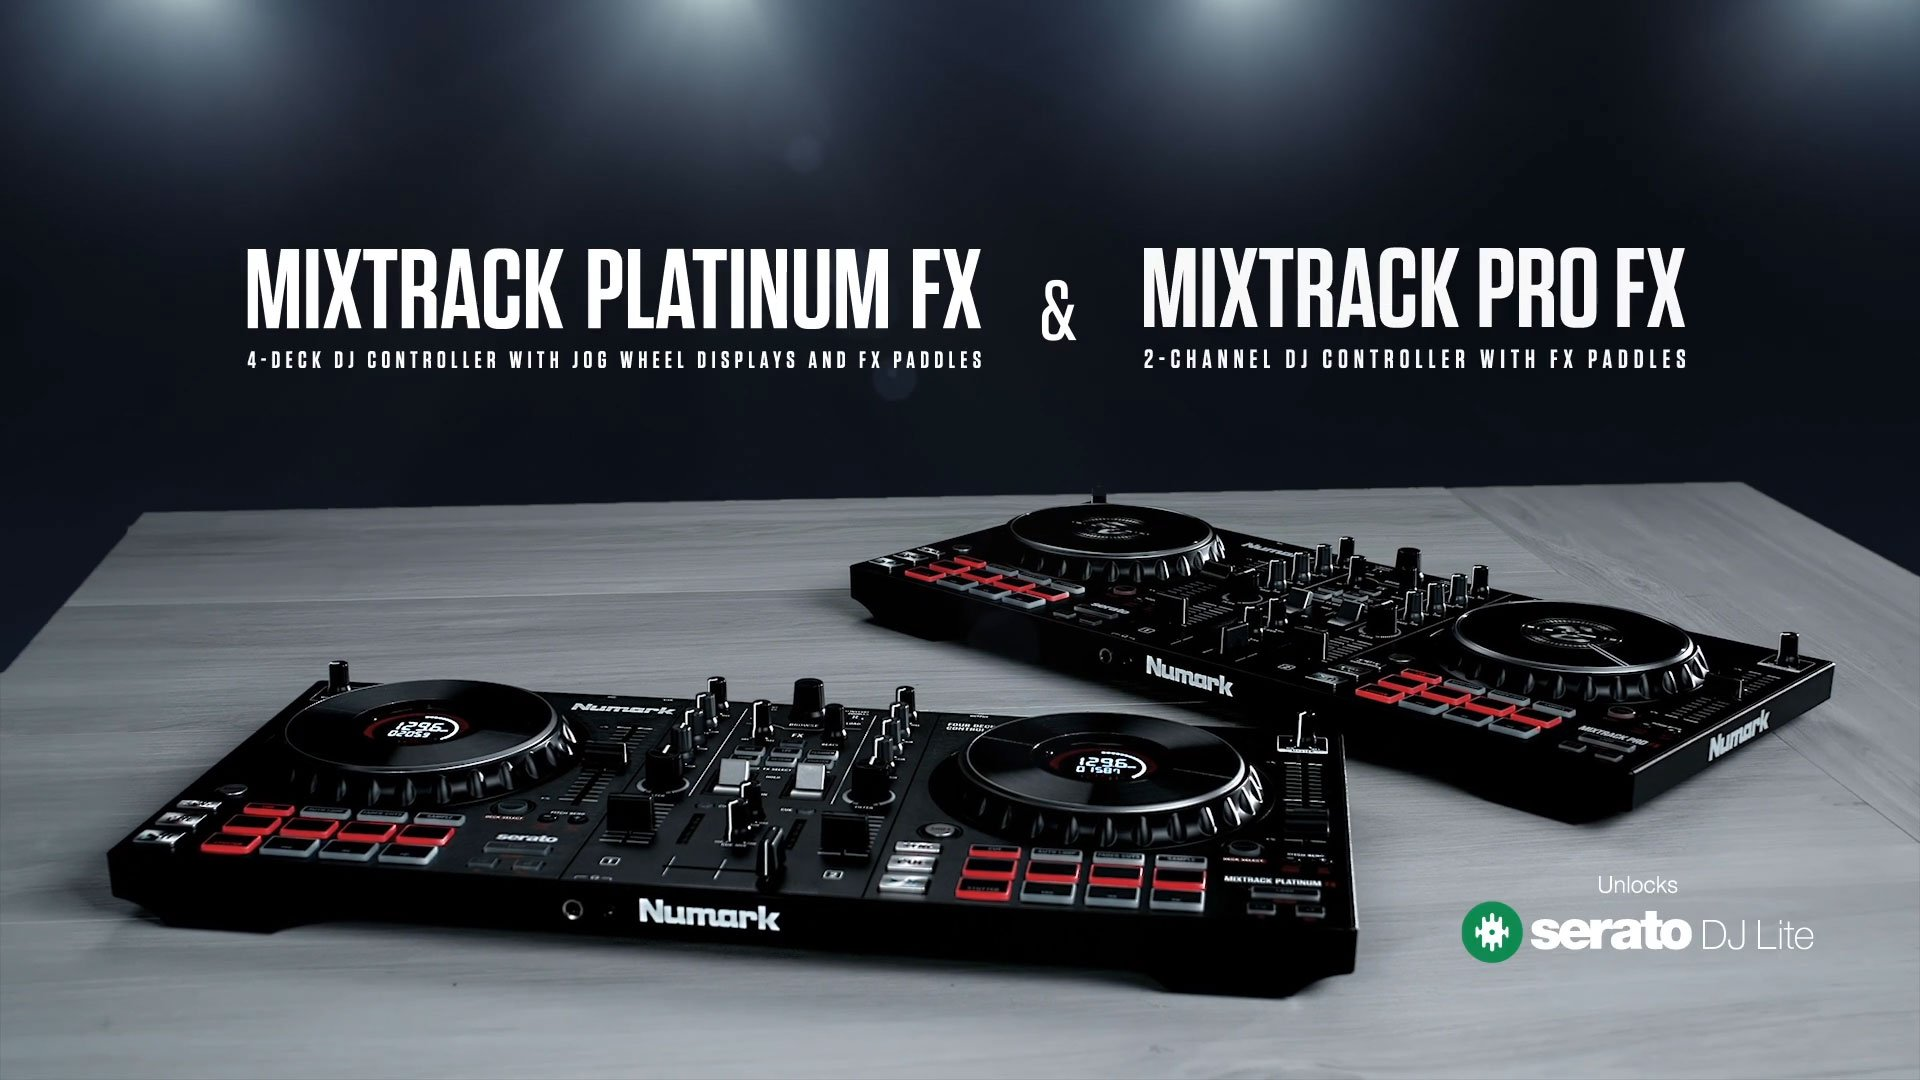 The Numark Mixtrack is back, in Pro FX and Platinum FX models 6